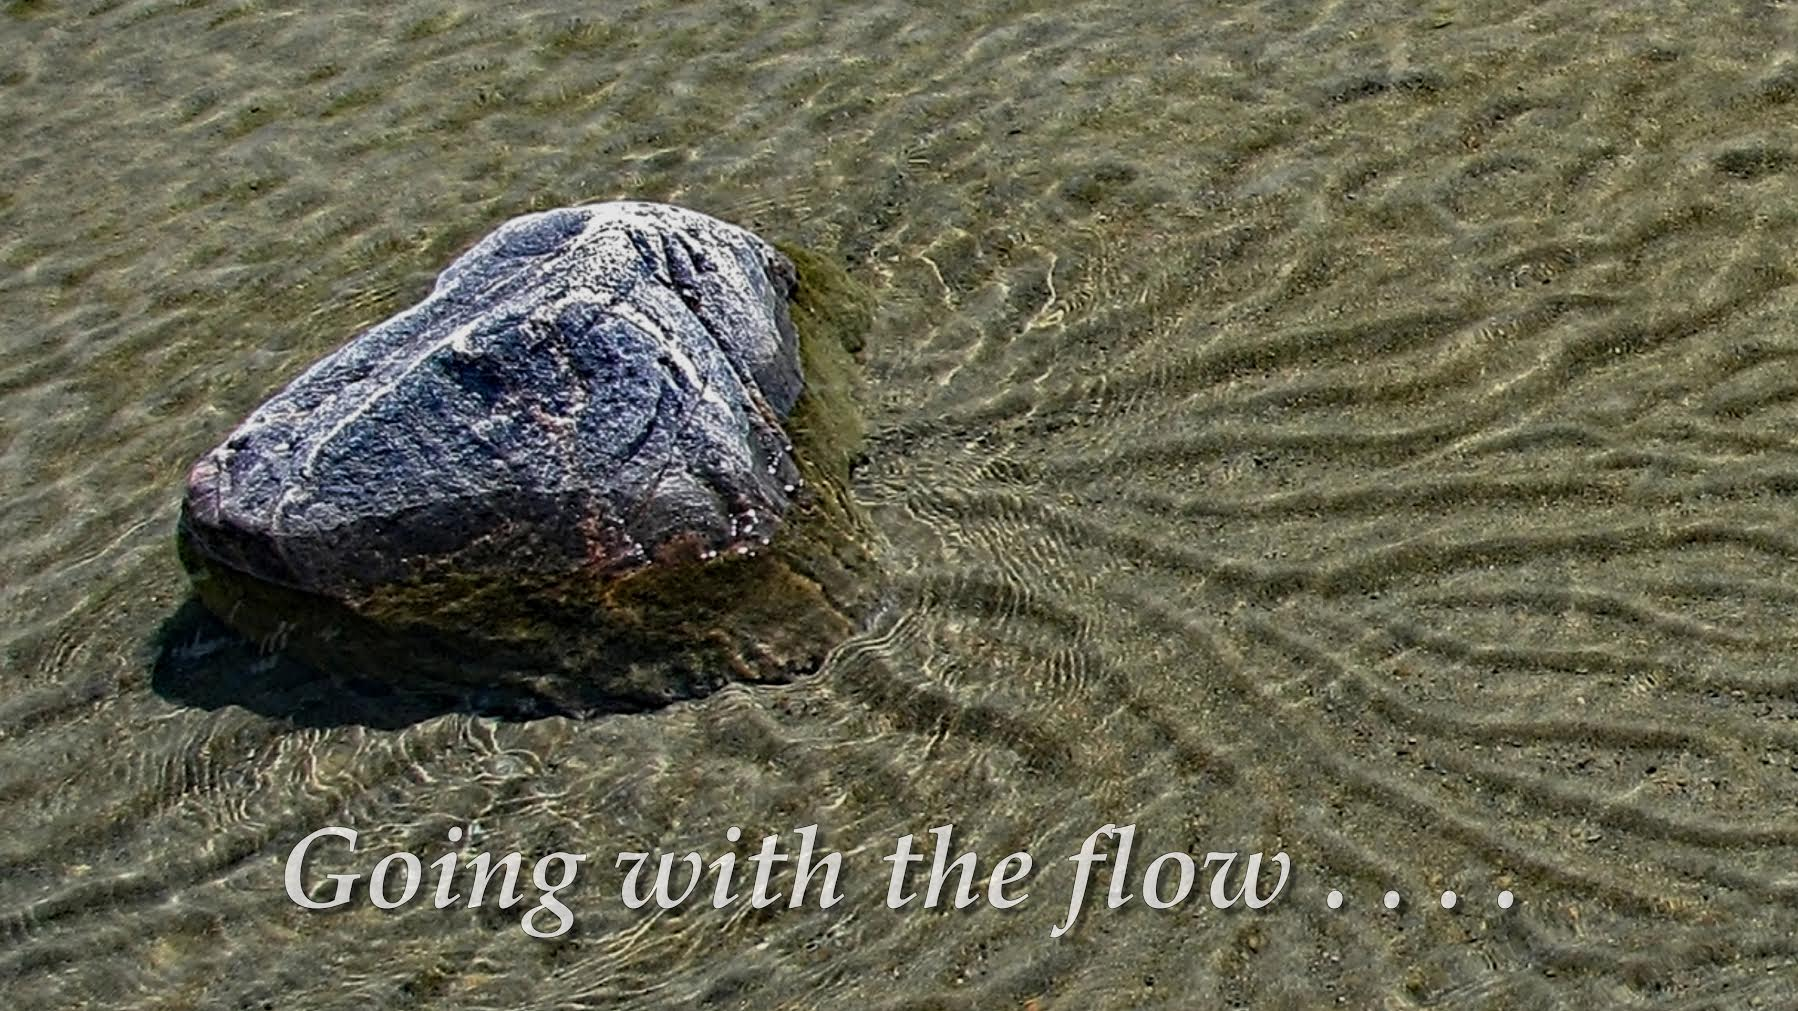 Going with the flow....